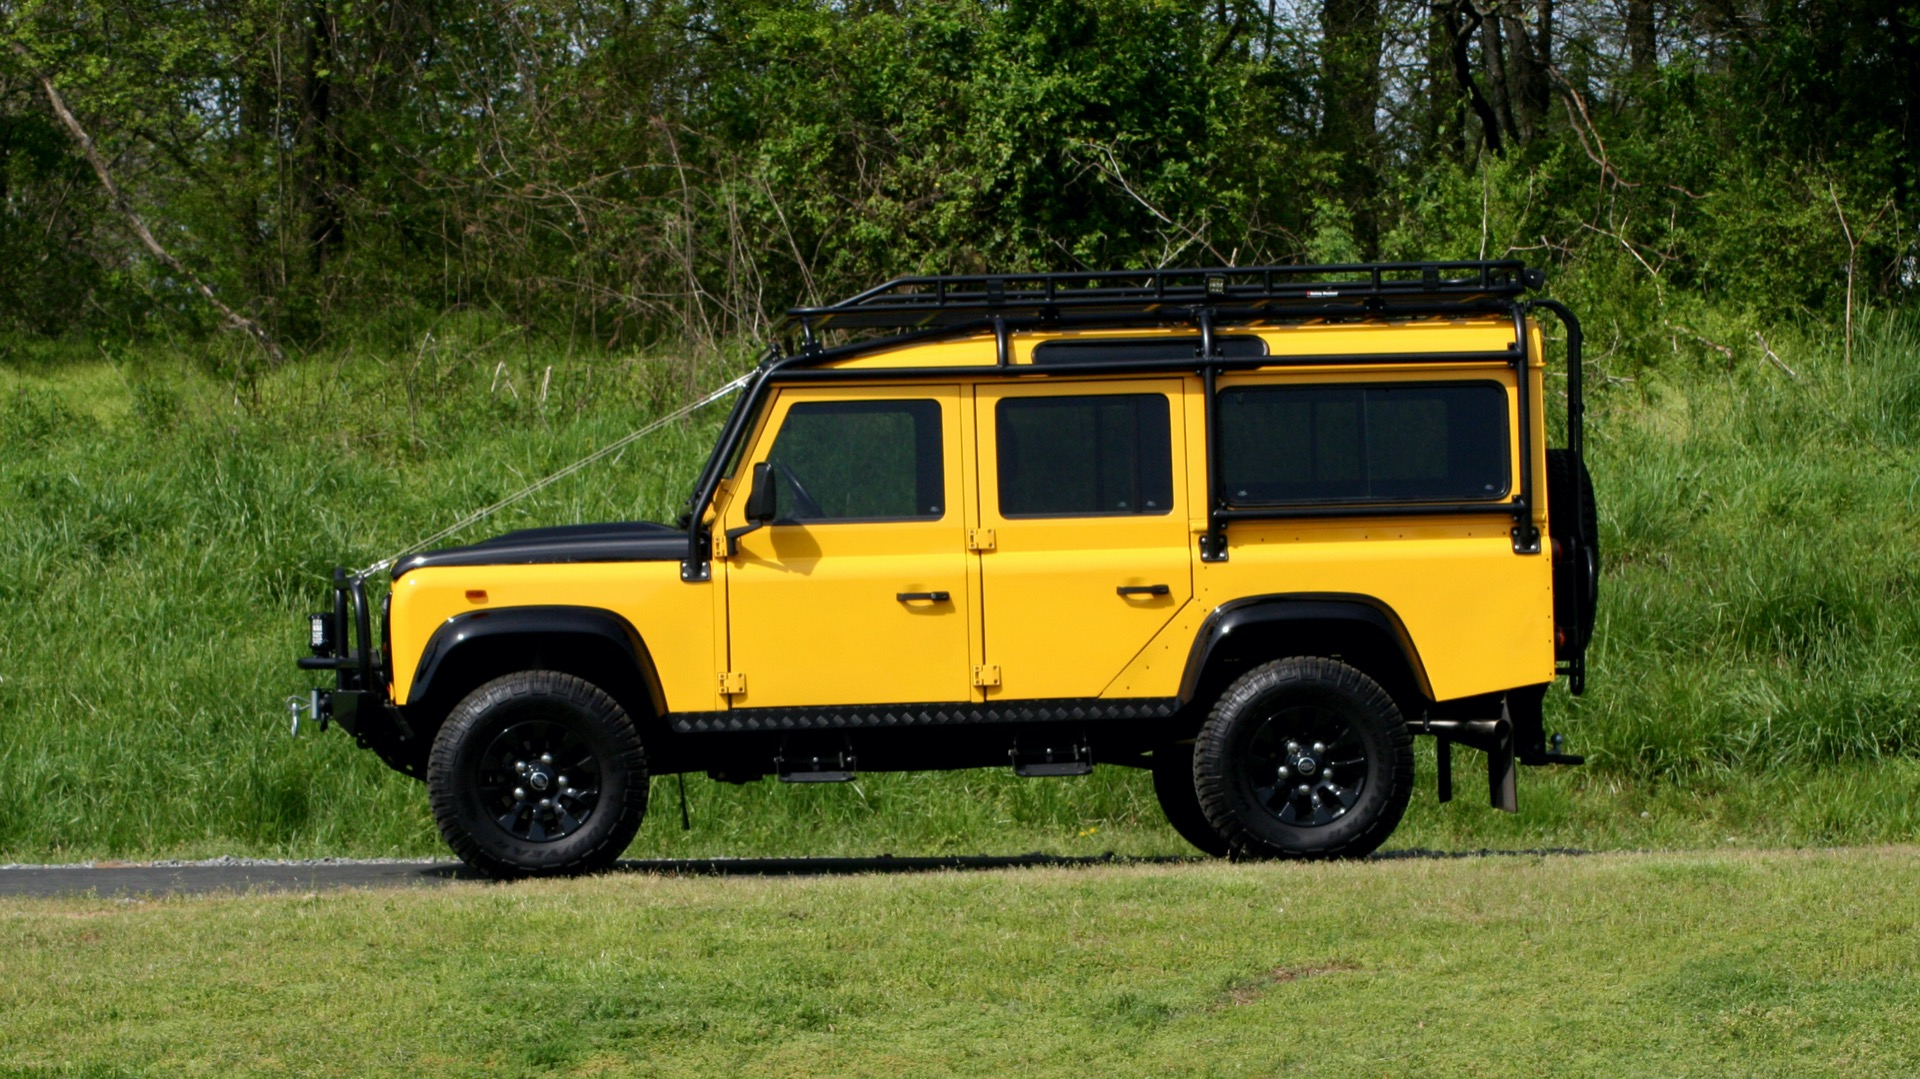 Used 1989 Land Rover Defender 110 4x4 Custom / Fully Restored / Fuel Injected V8 / 5-Spd Man for sale $60,000 at Formula Imports in Charlotte NC 28227 3